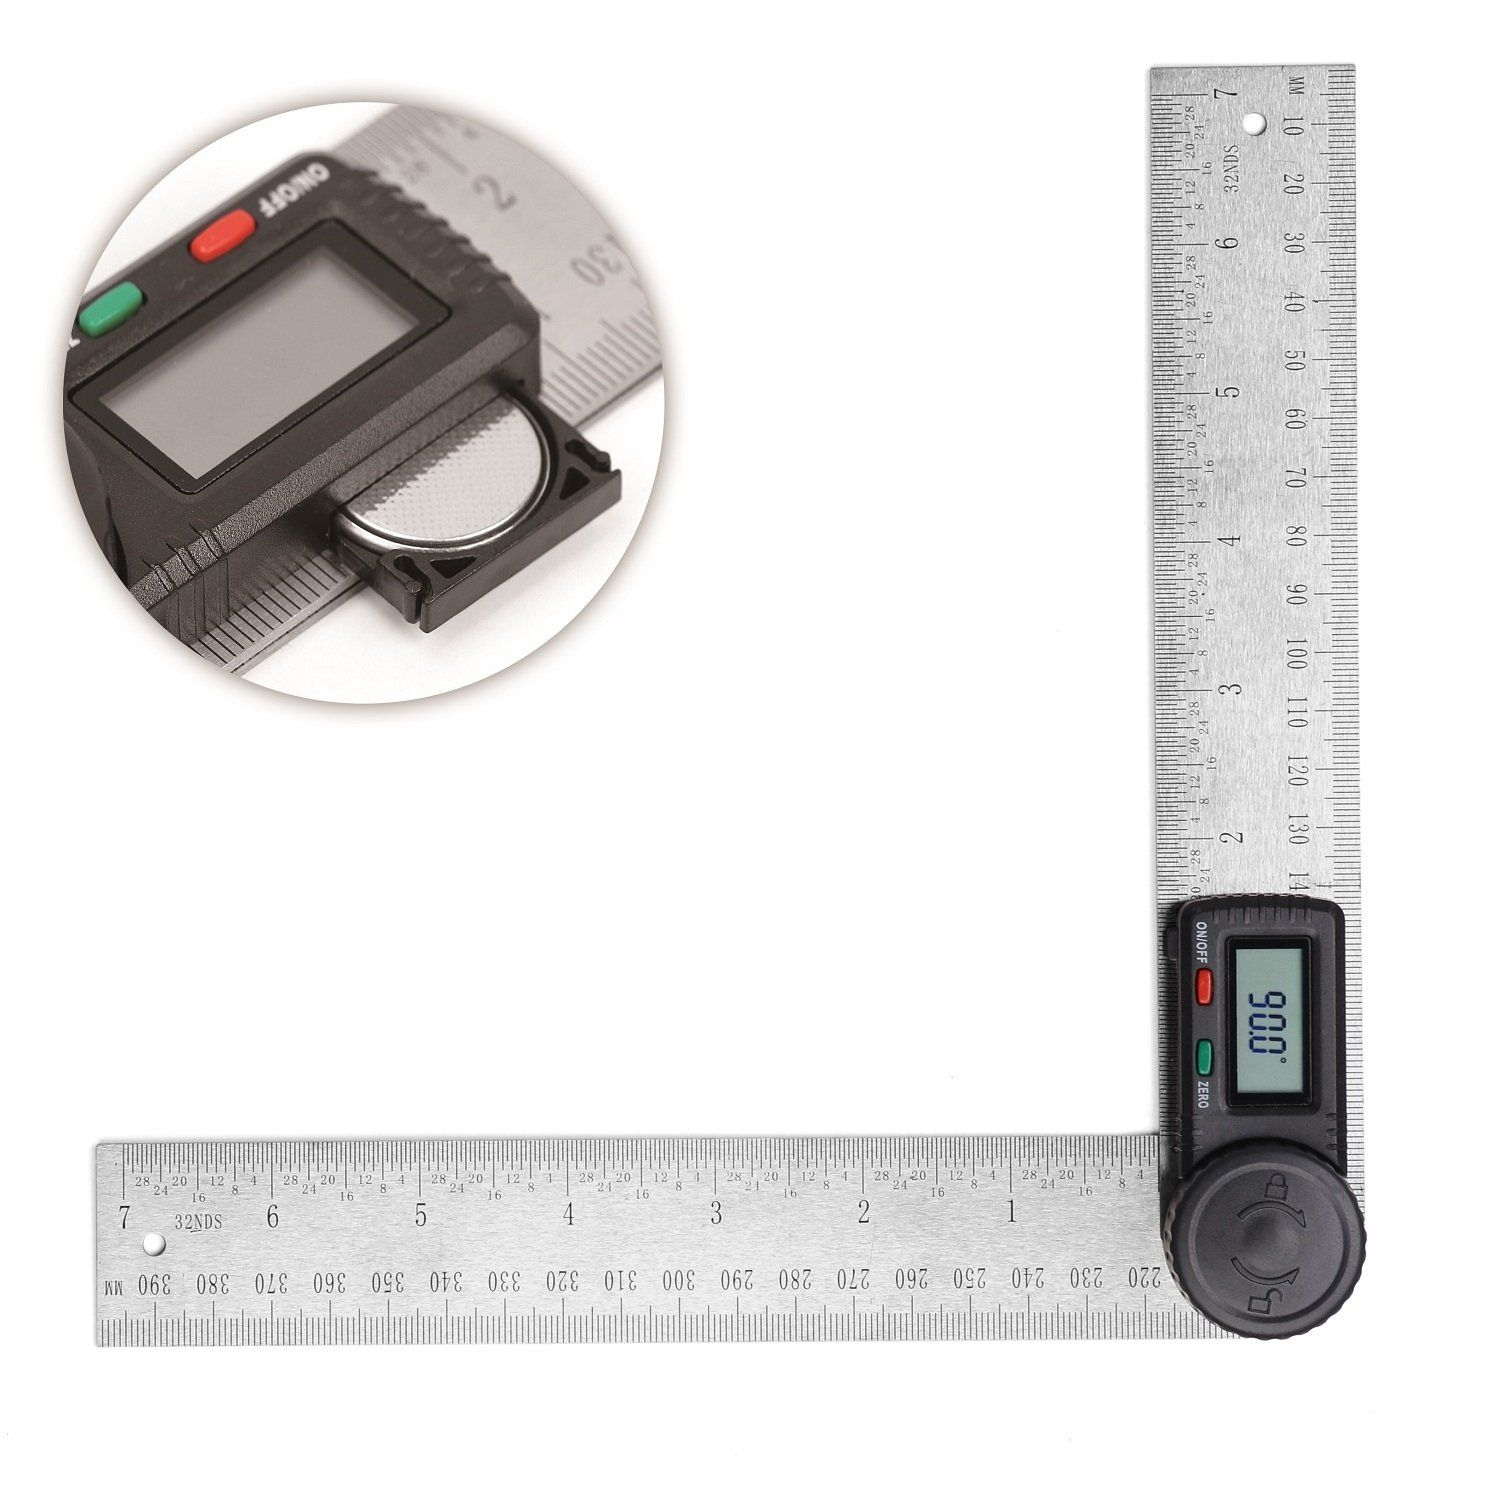 Horusdy Digital Angle Finder Ruler7 Inch Digital Protractor 200mm Stainless Steel Angle Gauge Best Unique Tool Gift For Men See This W Stainless Steel Angle